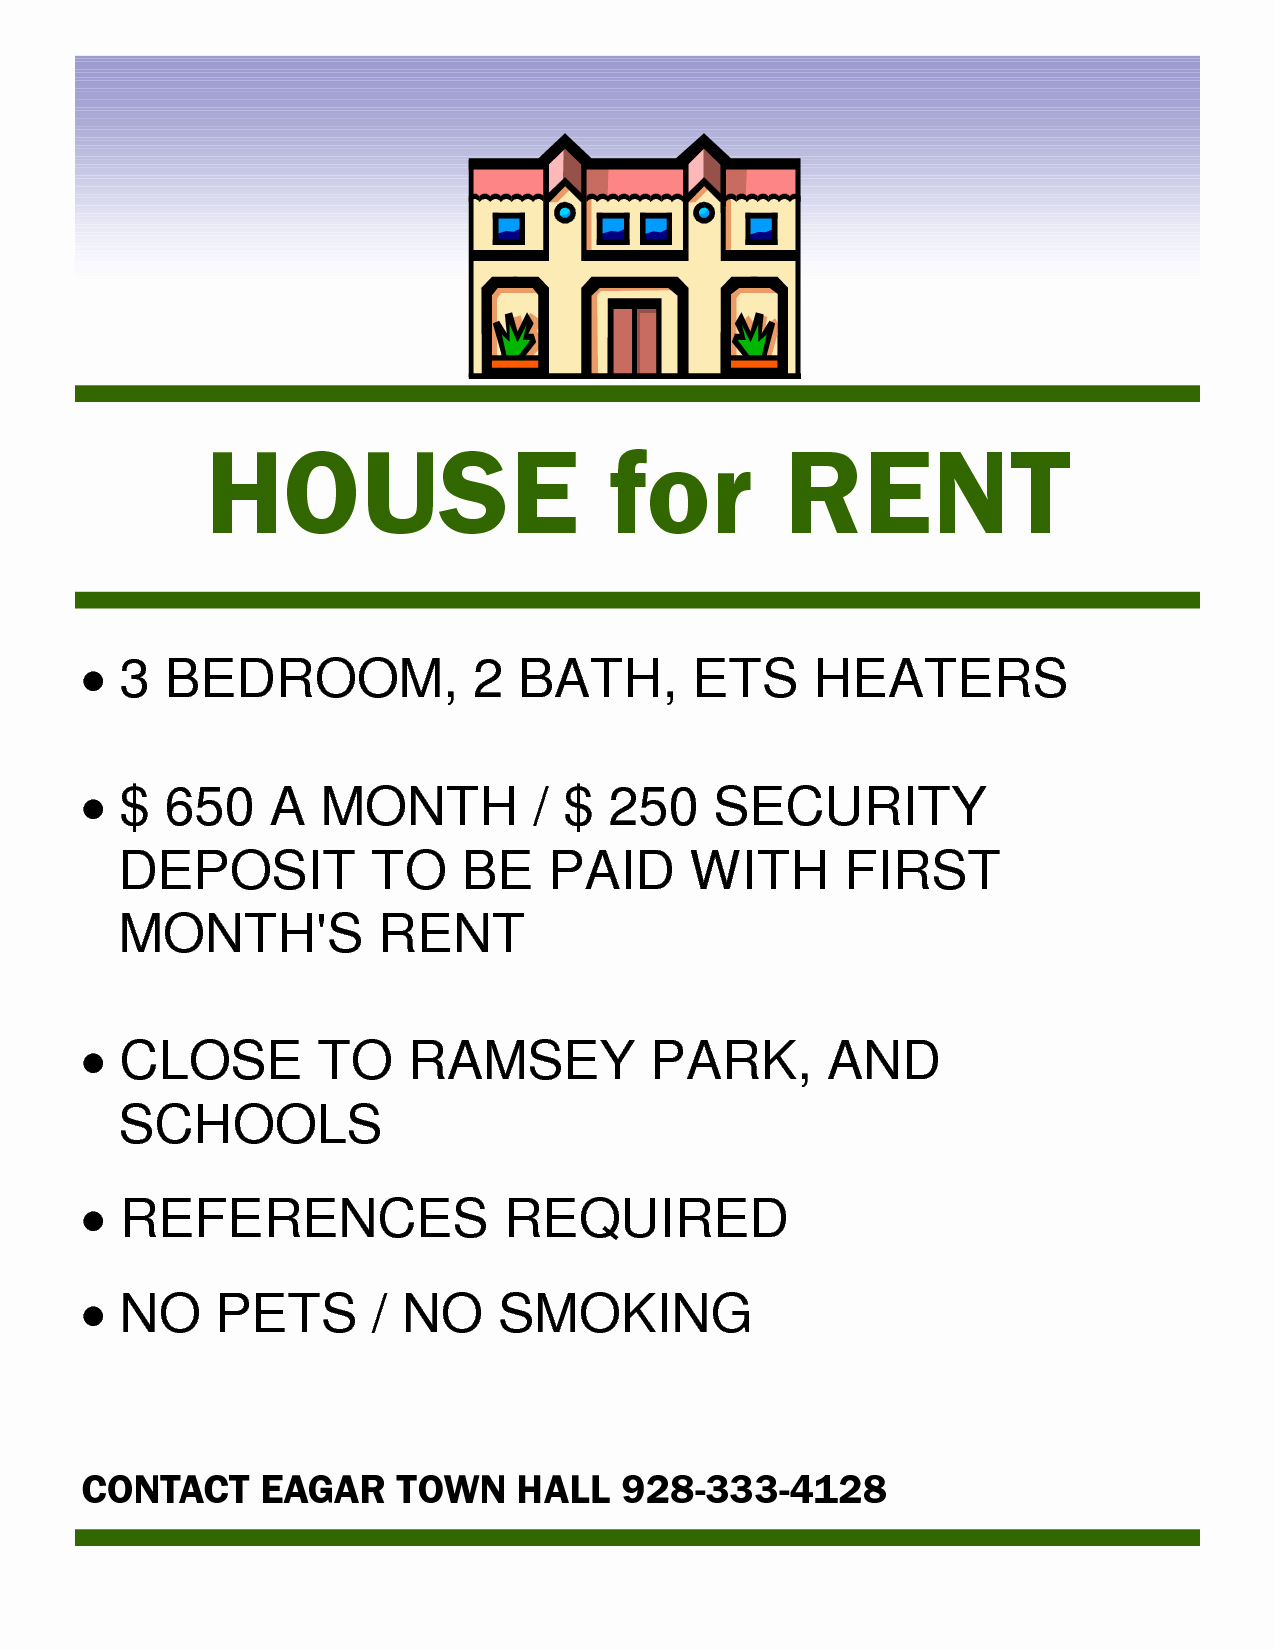 For Rent Flyer Template Free Unique 9 Home for Rent Flyer Free Psd Free Real Estate